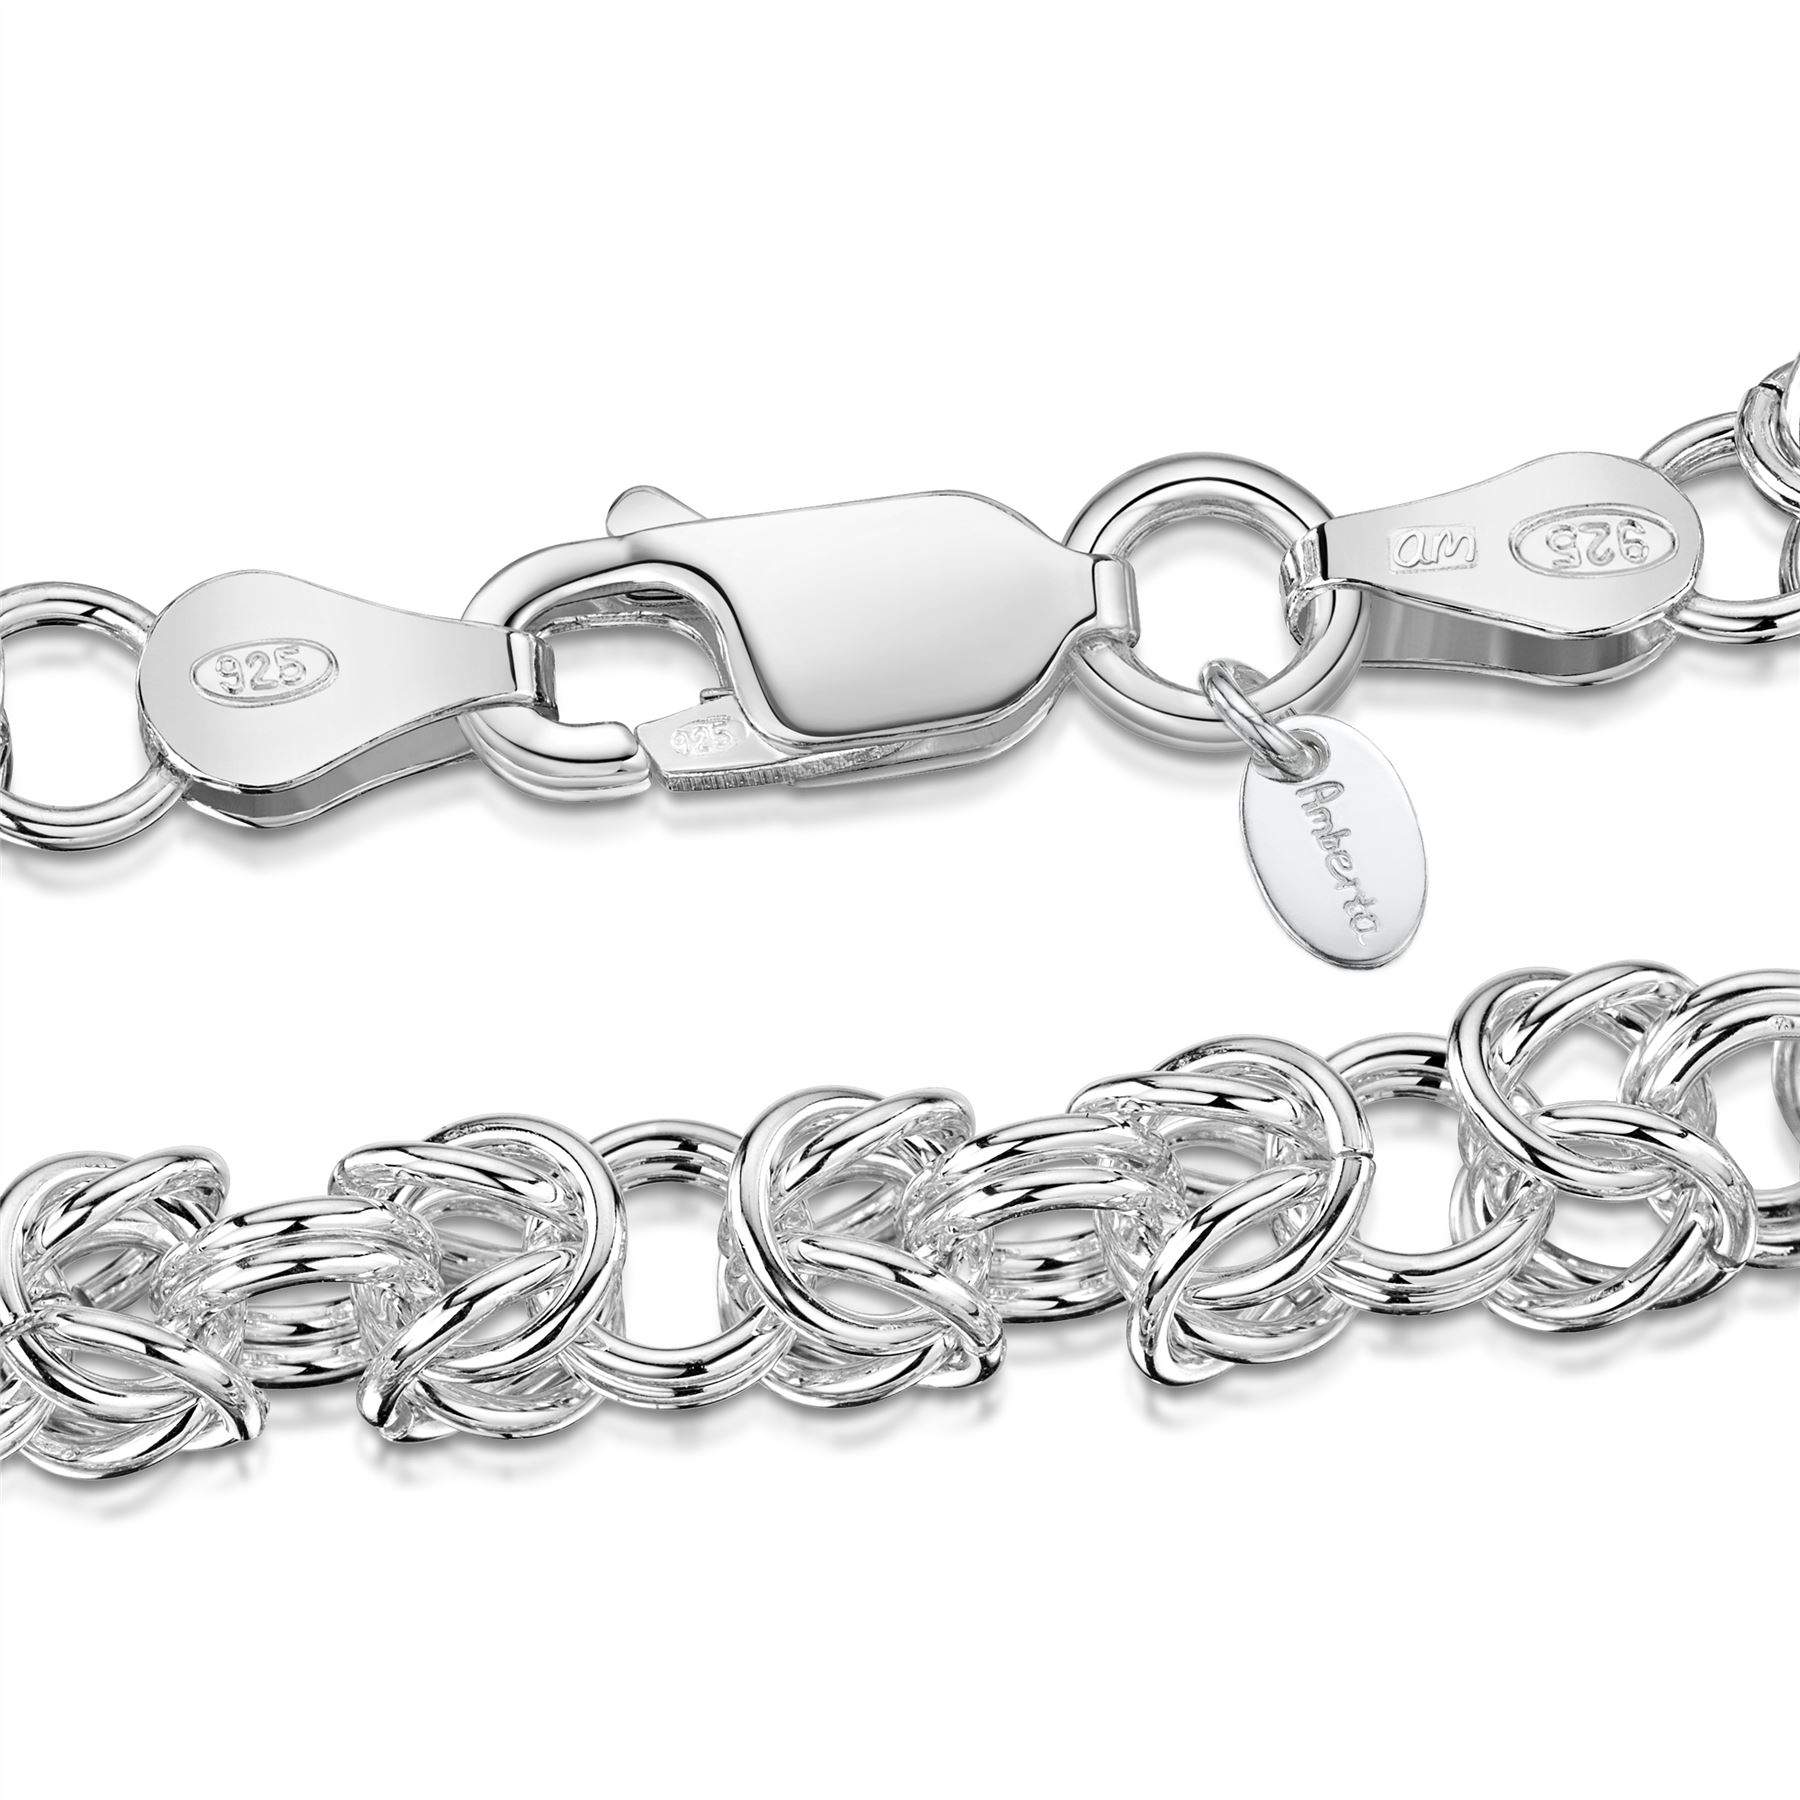 Amberta-Genuine-Real-925-Sterling-Silver-Chain-Bracelet-for-Women-from-Italy miniature 23